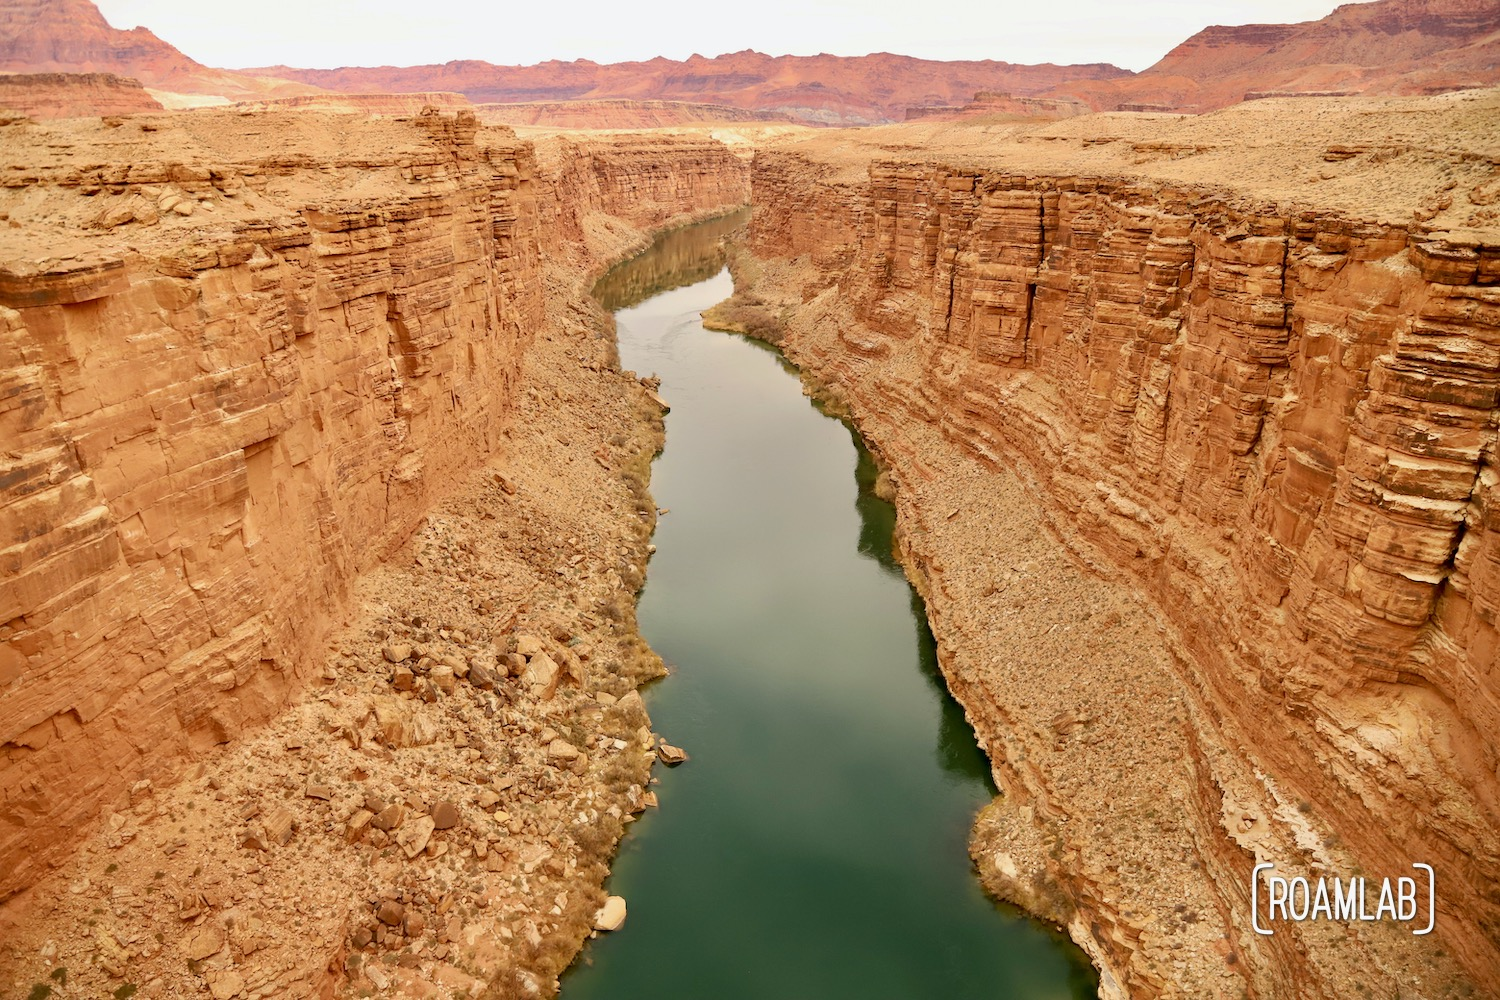 The wide Colorado River flowing between the golden cliffs of the Marble Canyon.